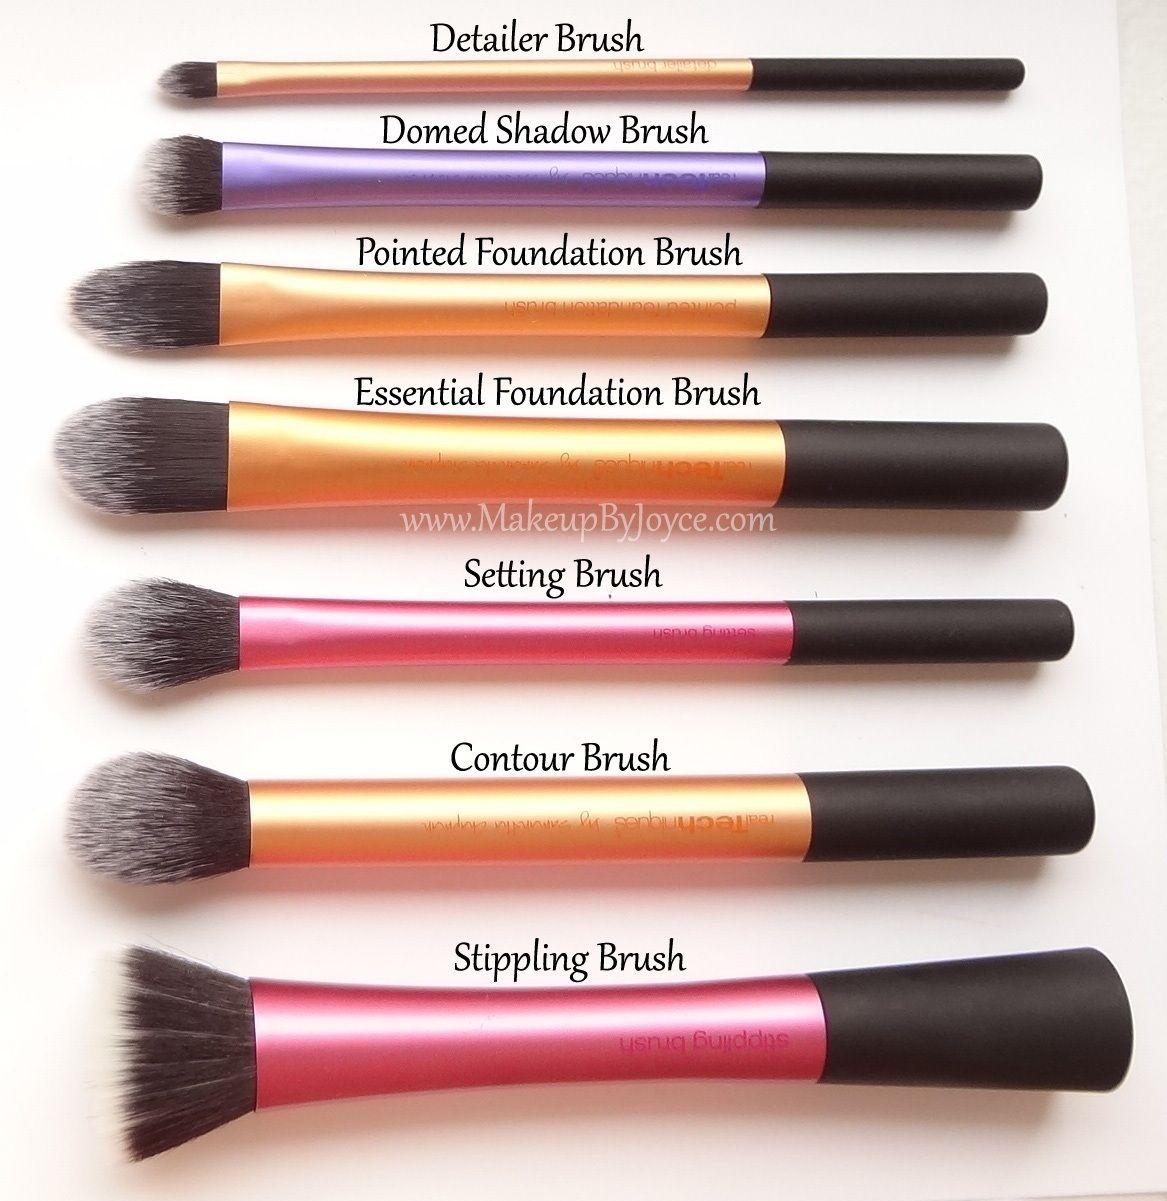 real techniques mixture of brushes side by side Makeup